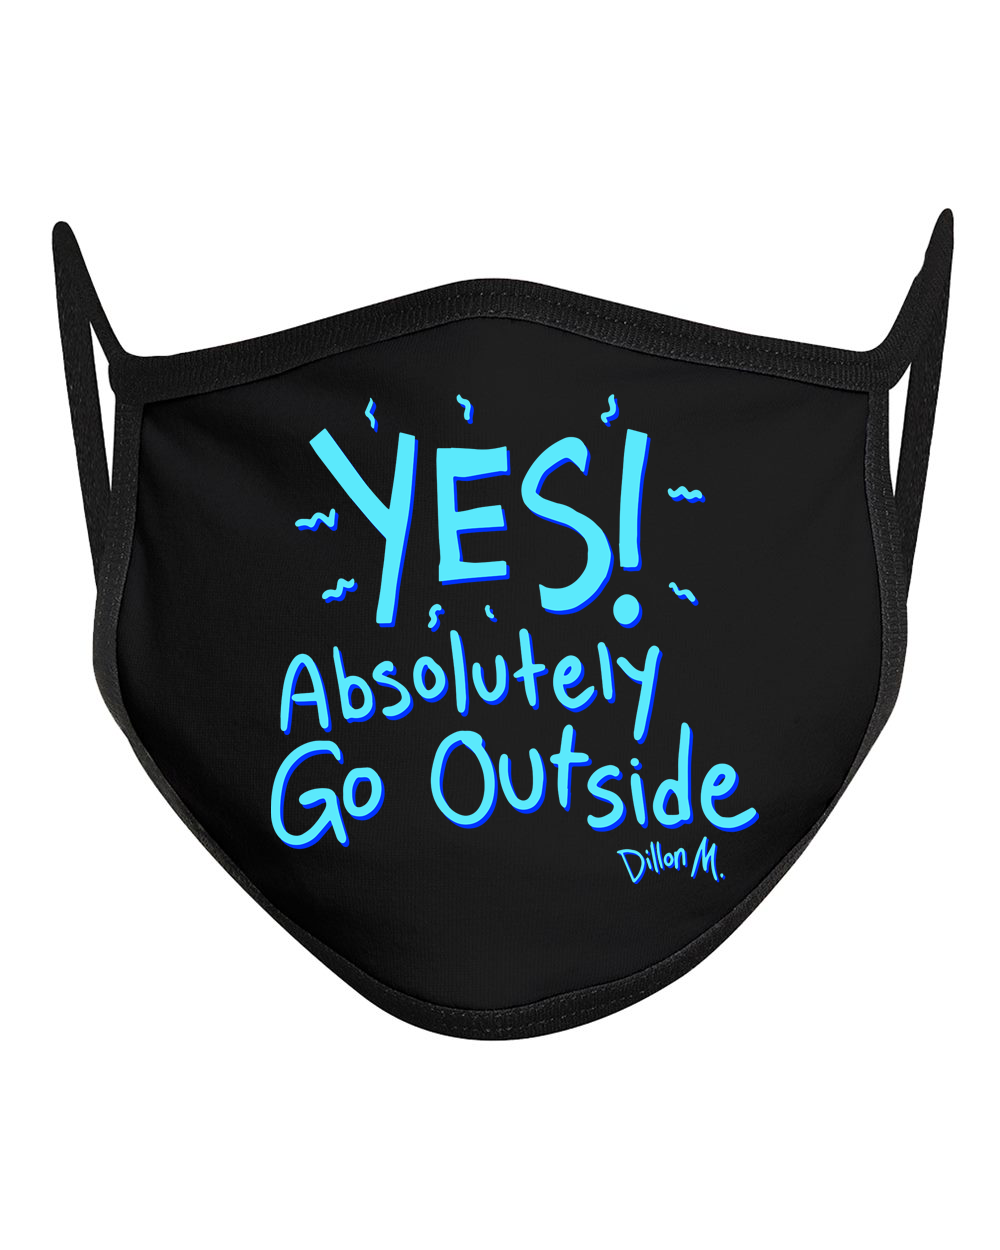 Dillon M. : Go Outside Mask